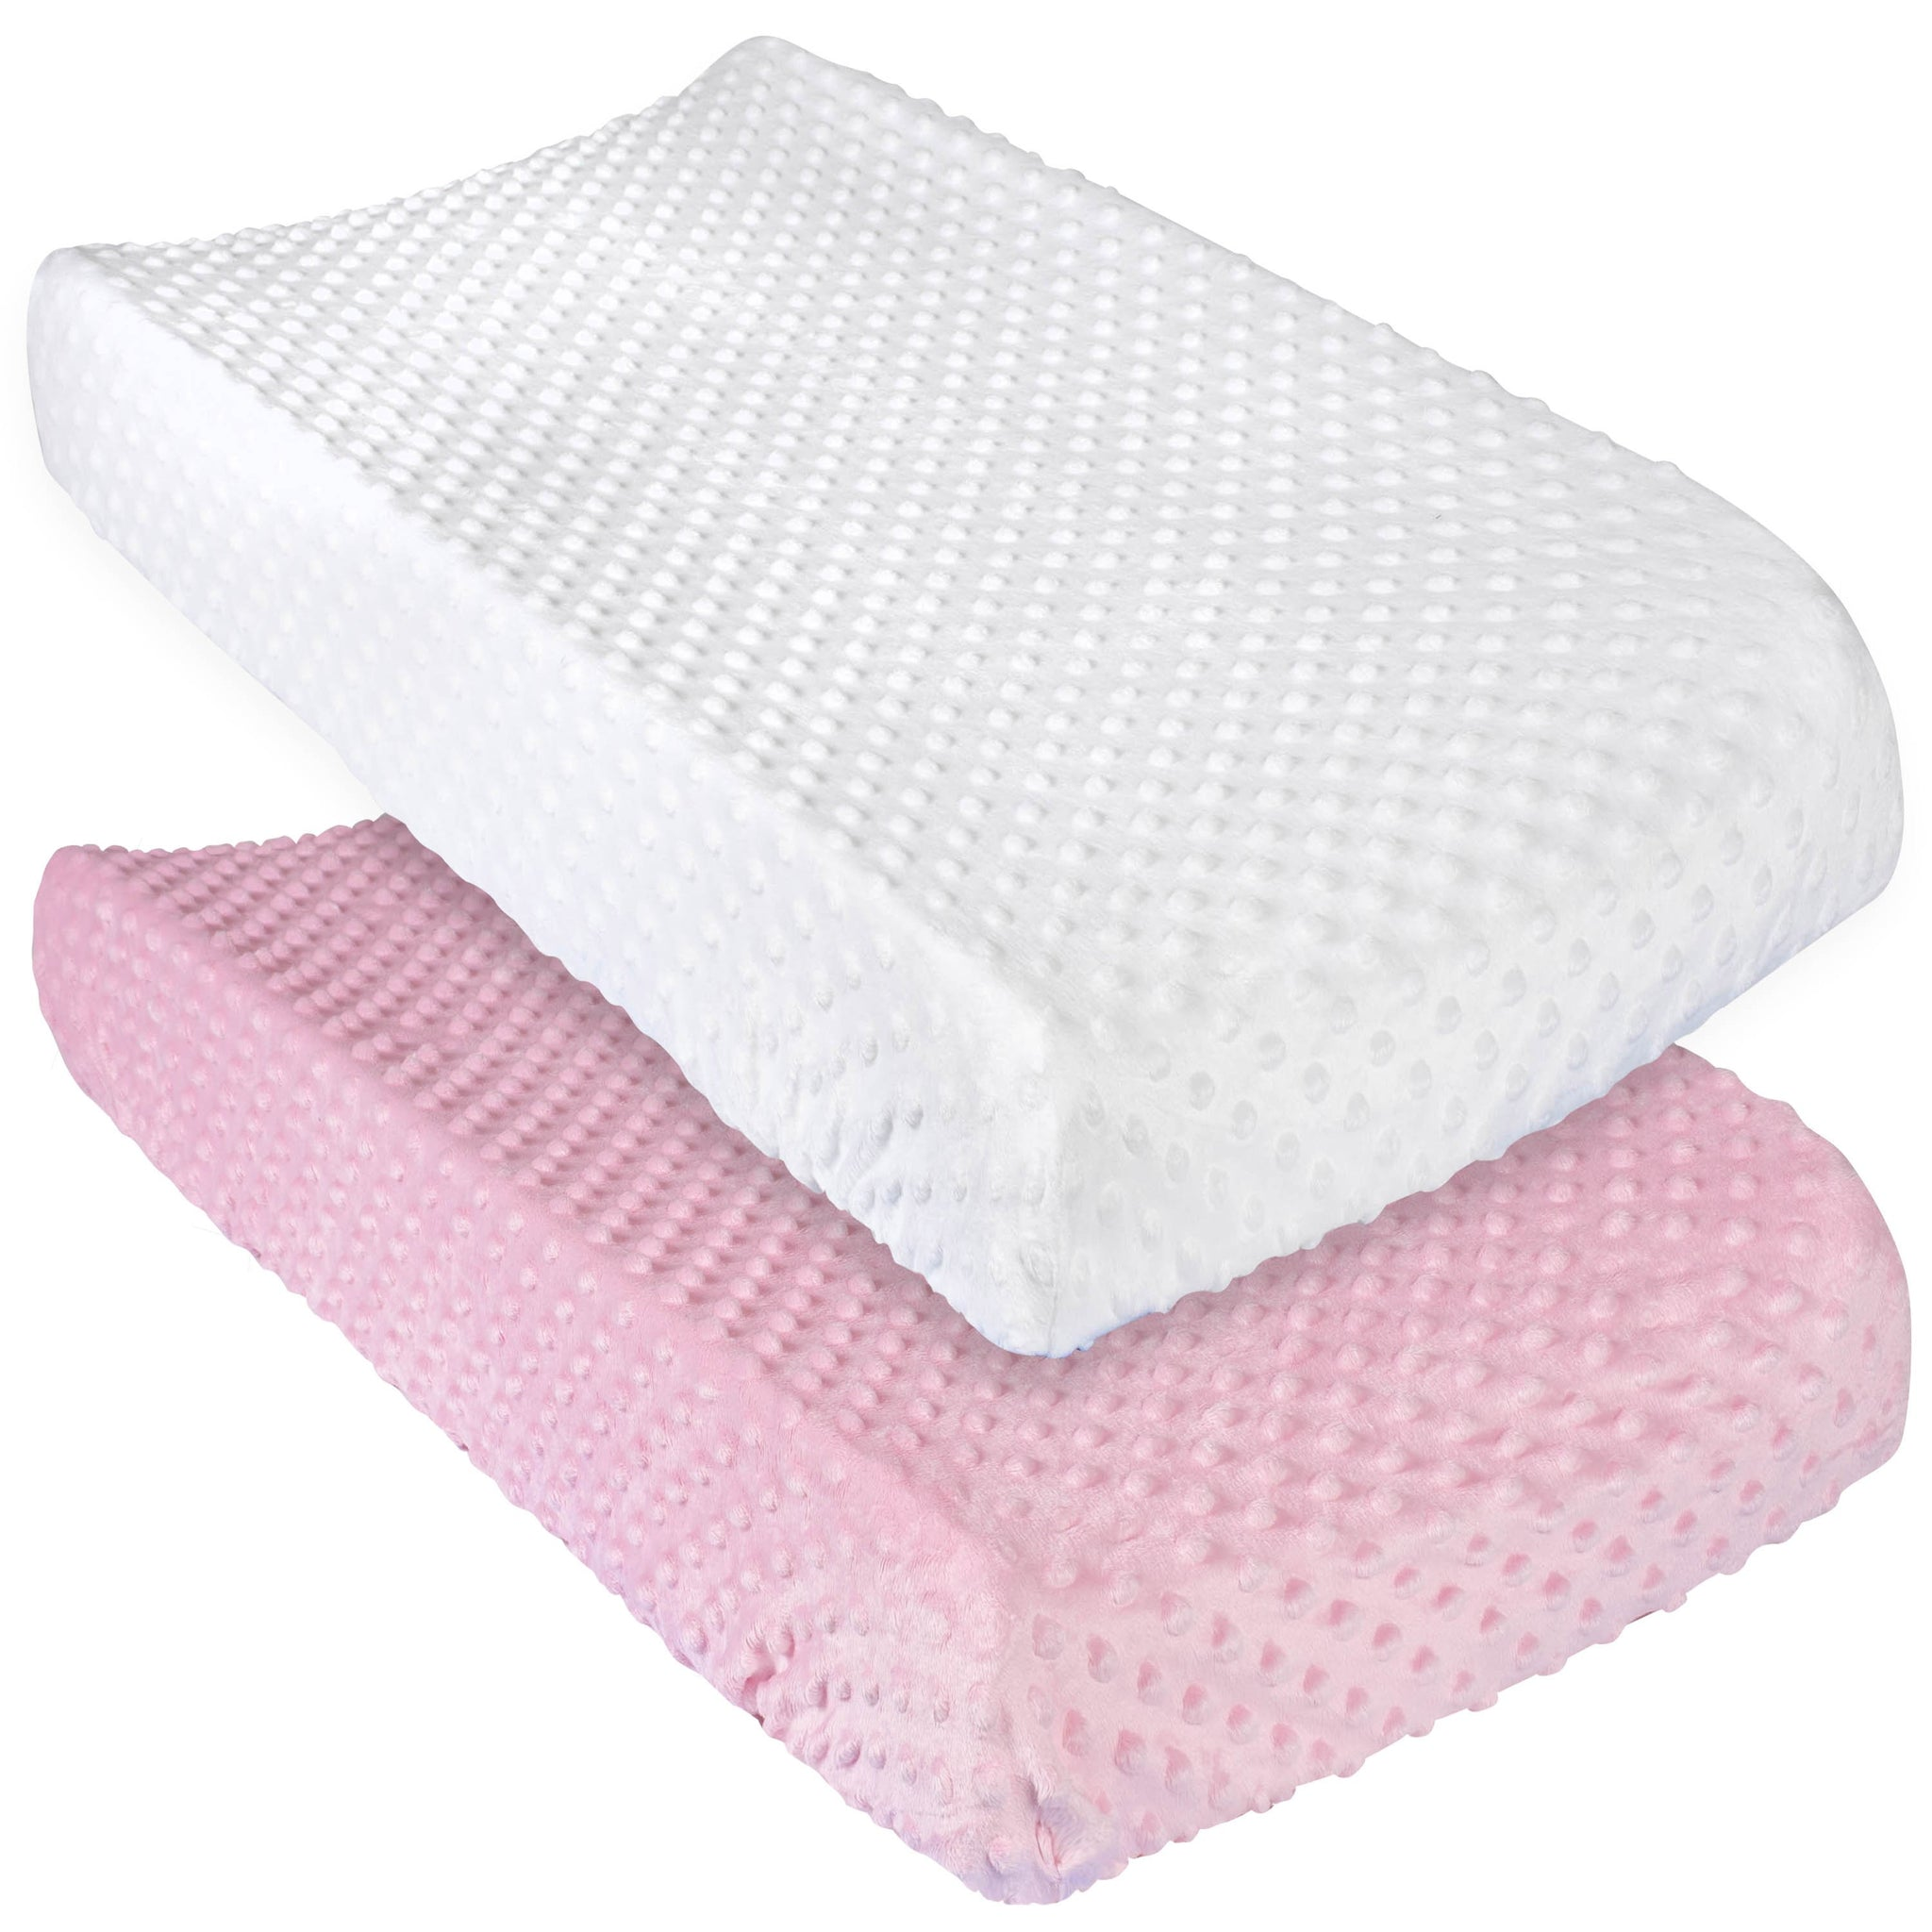 Gerber 2-Pack Baby Girls Pink/White Changing Pad Covers